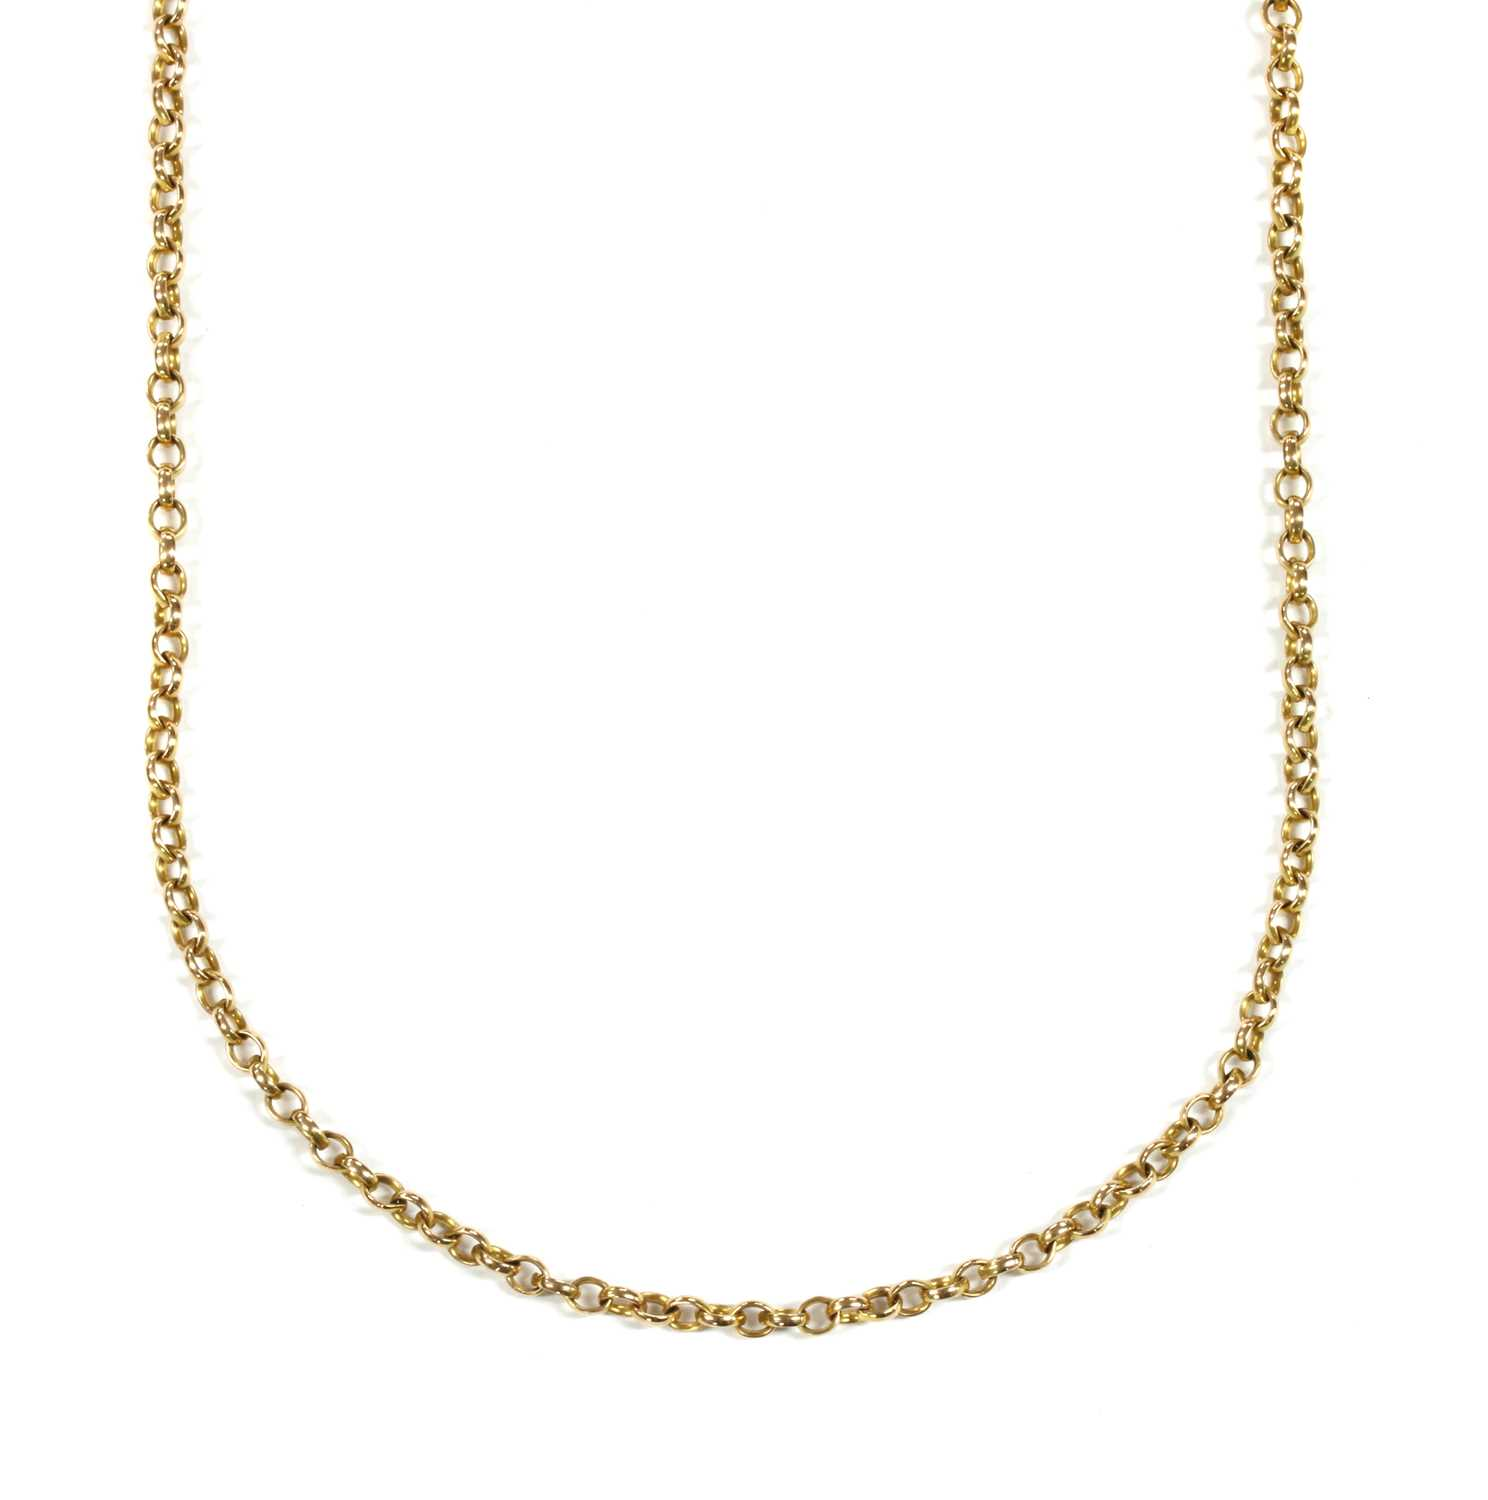 Lot 34 - A gold oval belcher link chain